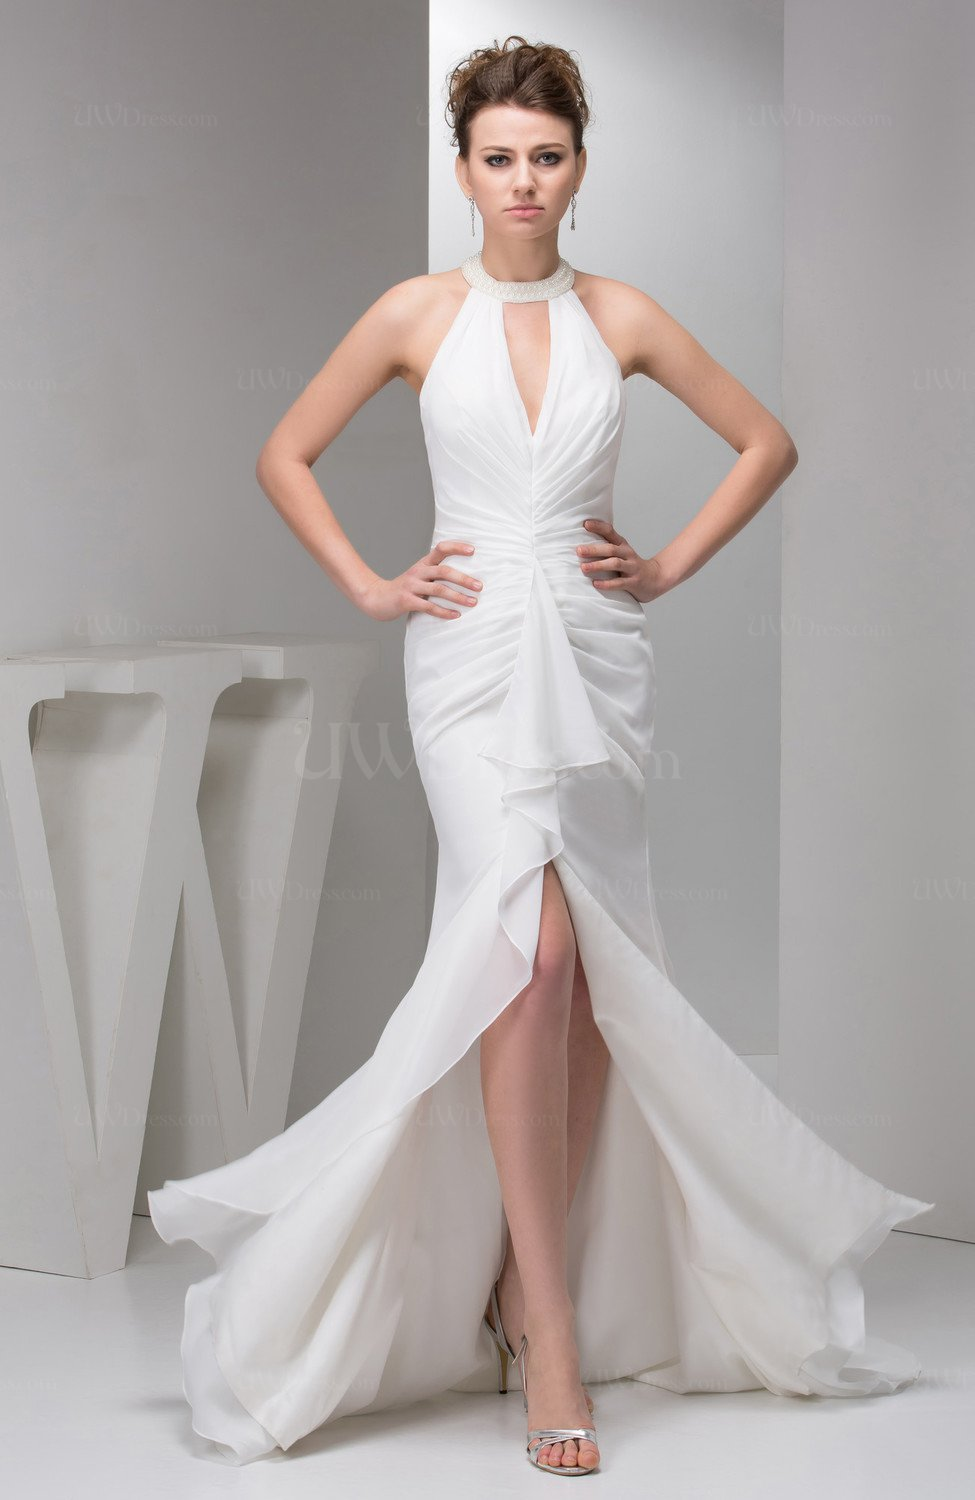 White Long Evening Dress Elegant Simple Beaded Sparkly Unique Modern Classy